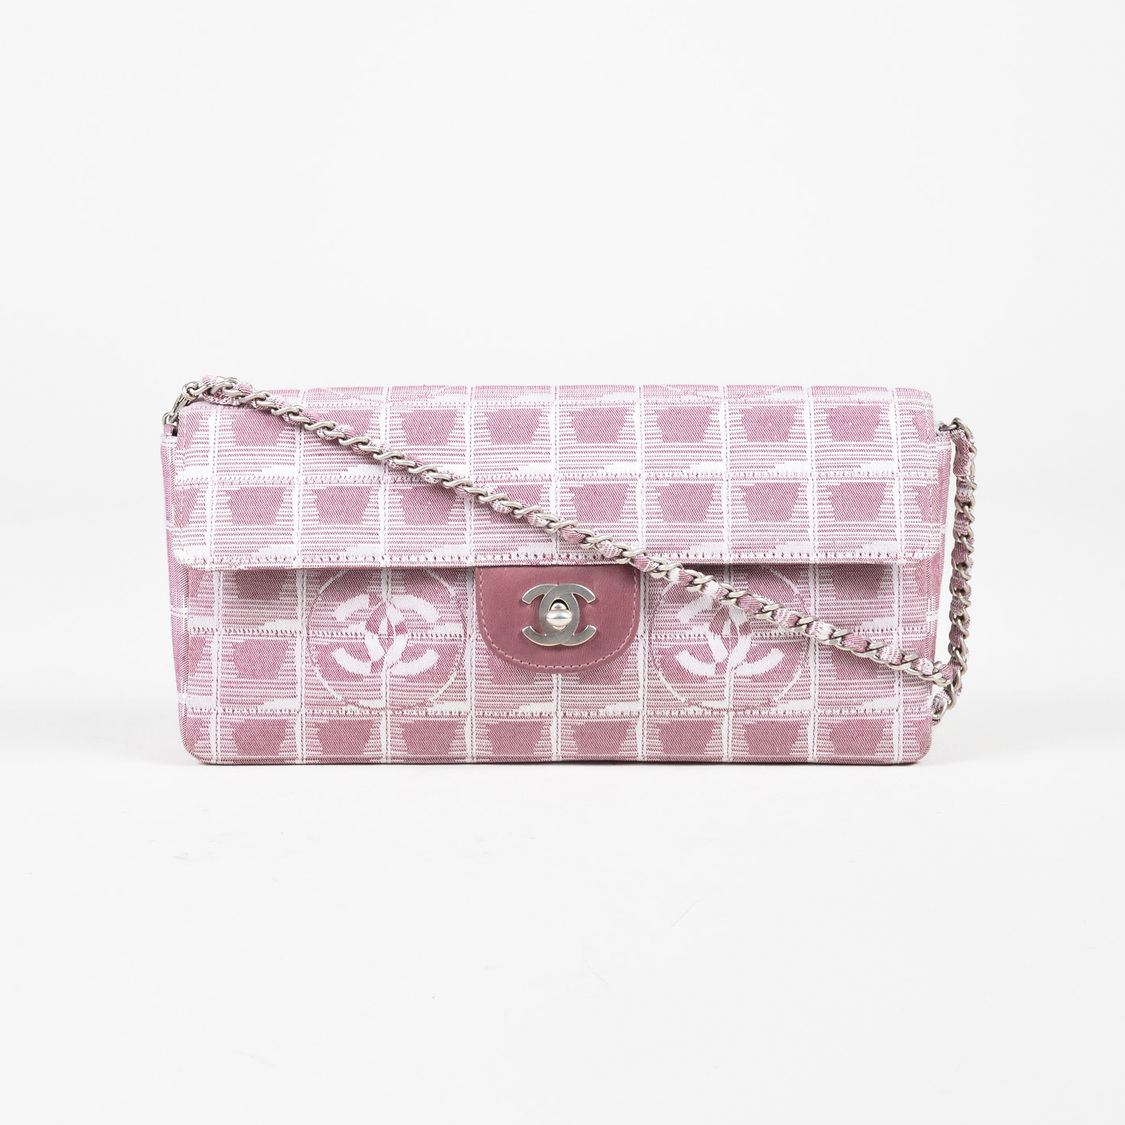 Chanel Pink Quilted Nylon Travel Ligne EW Flap Shoulder Bag EBay - What is an invoice paypal chanel online store